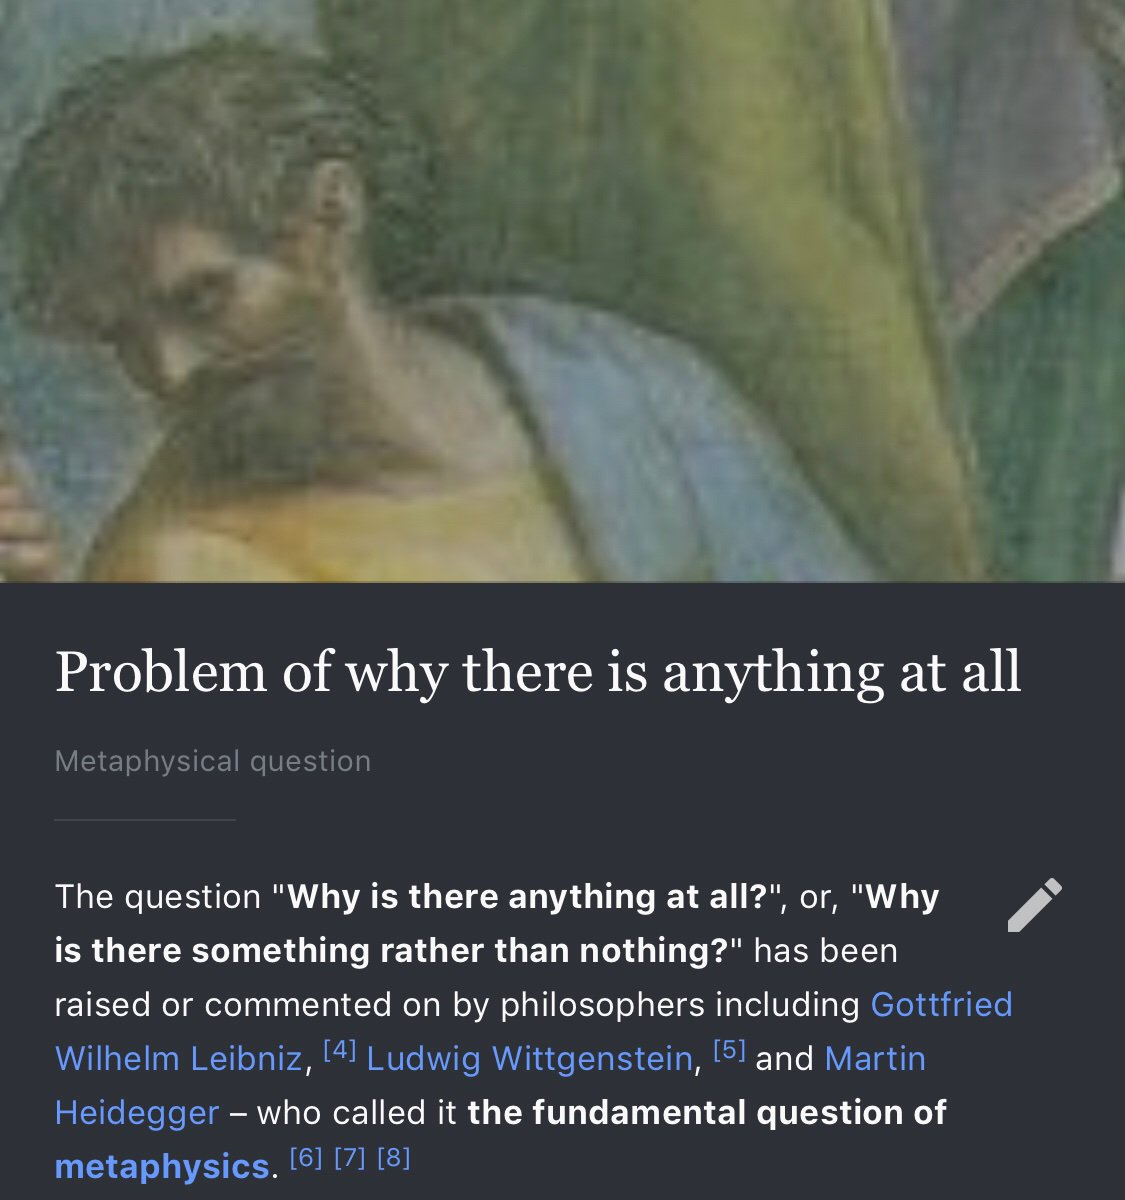 Why there is anything at all